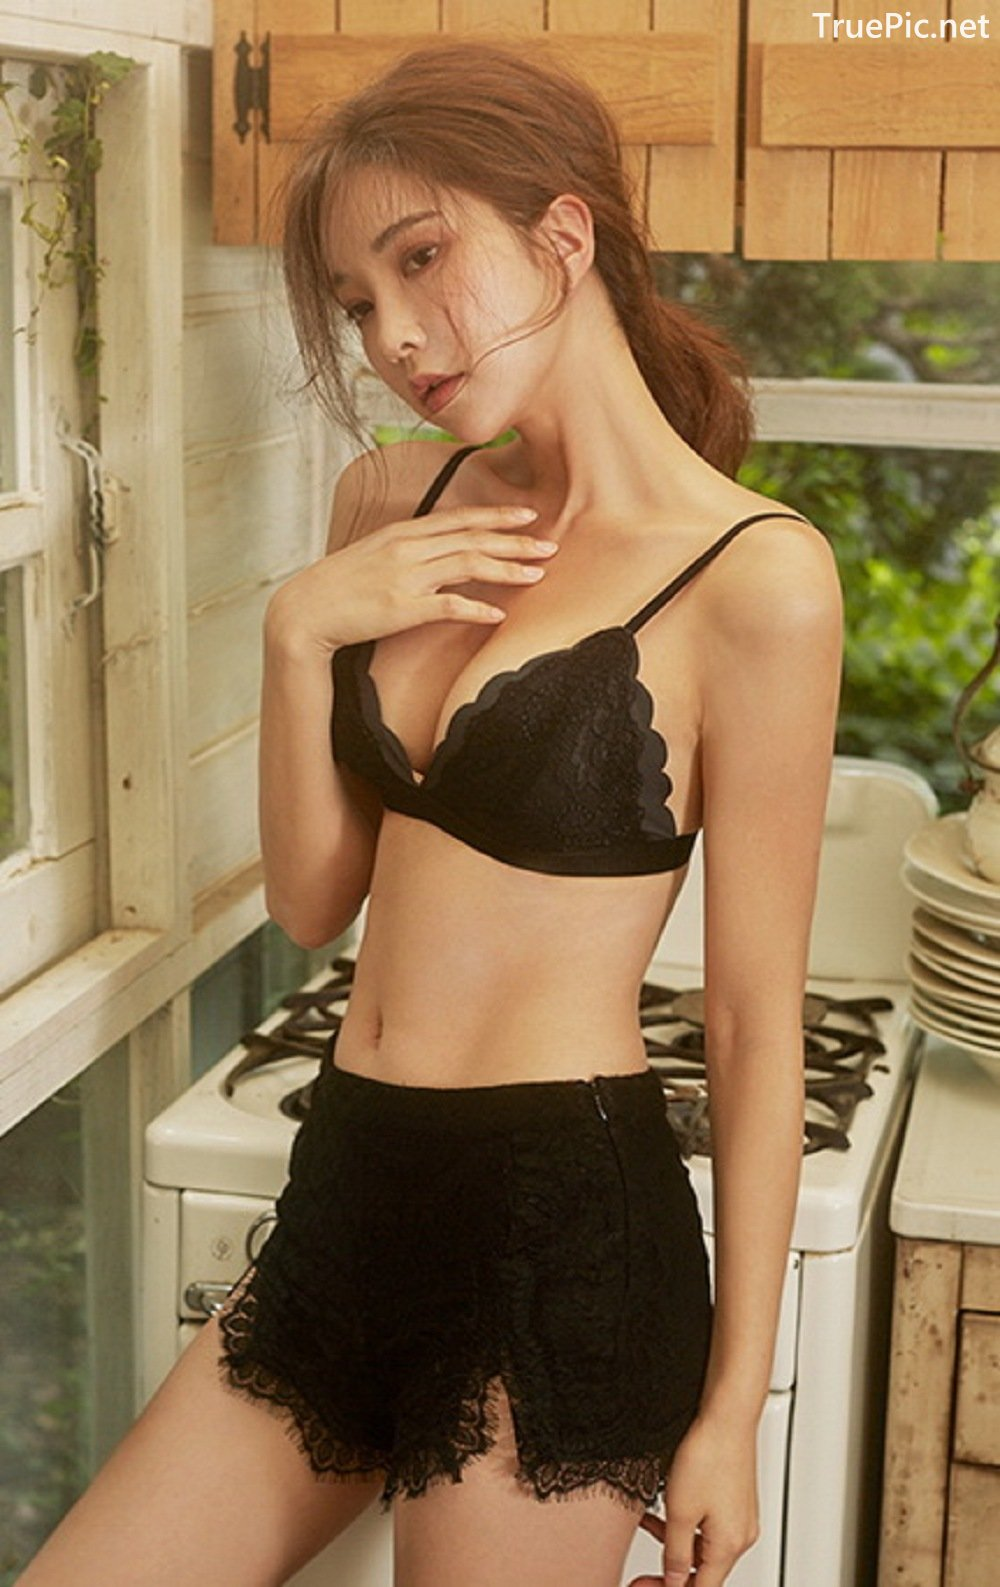 Image-Park-Soo-Yeon-Black-Red-and-White-Lingerie-Korean-Model-Fashion-TruePic.net- Picture-6